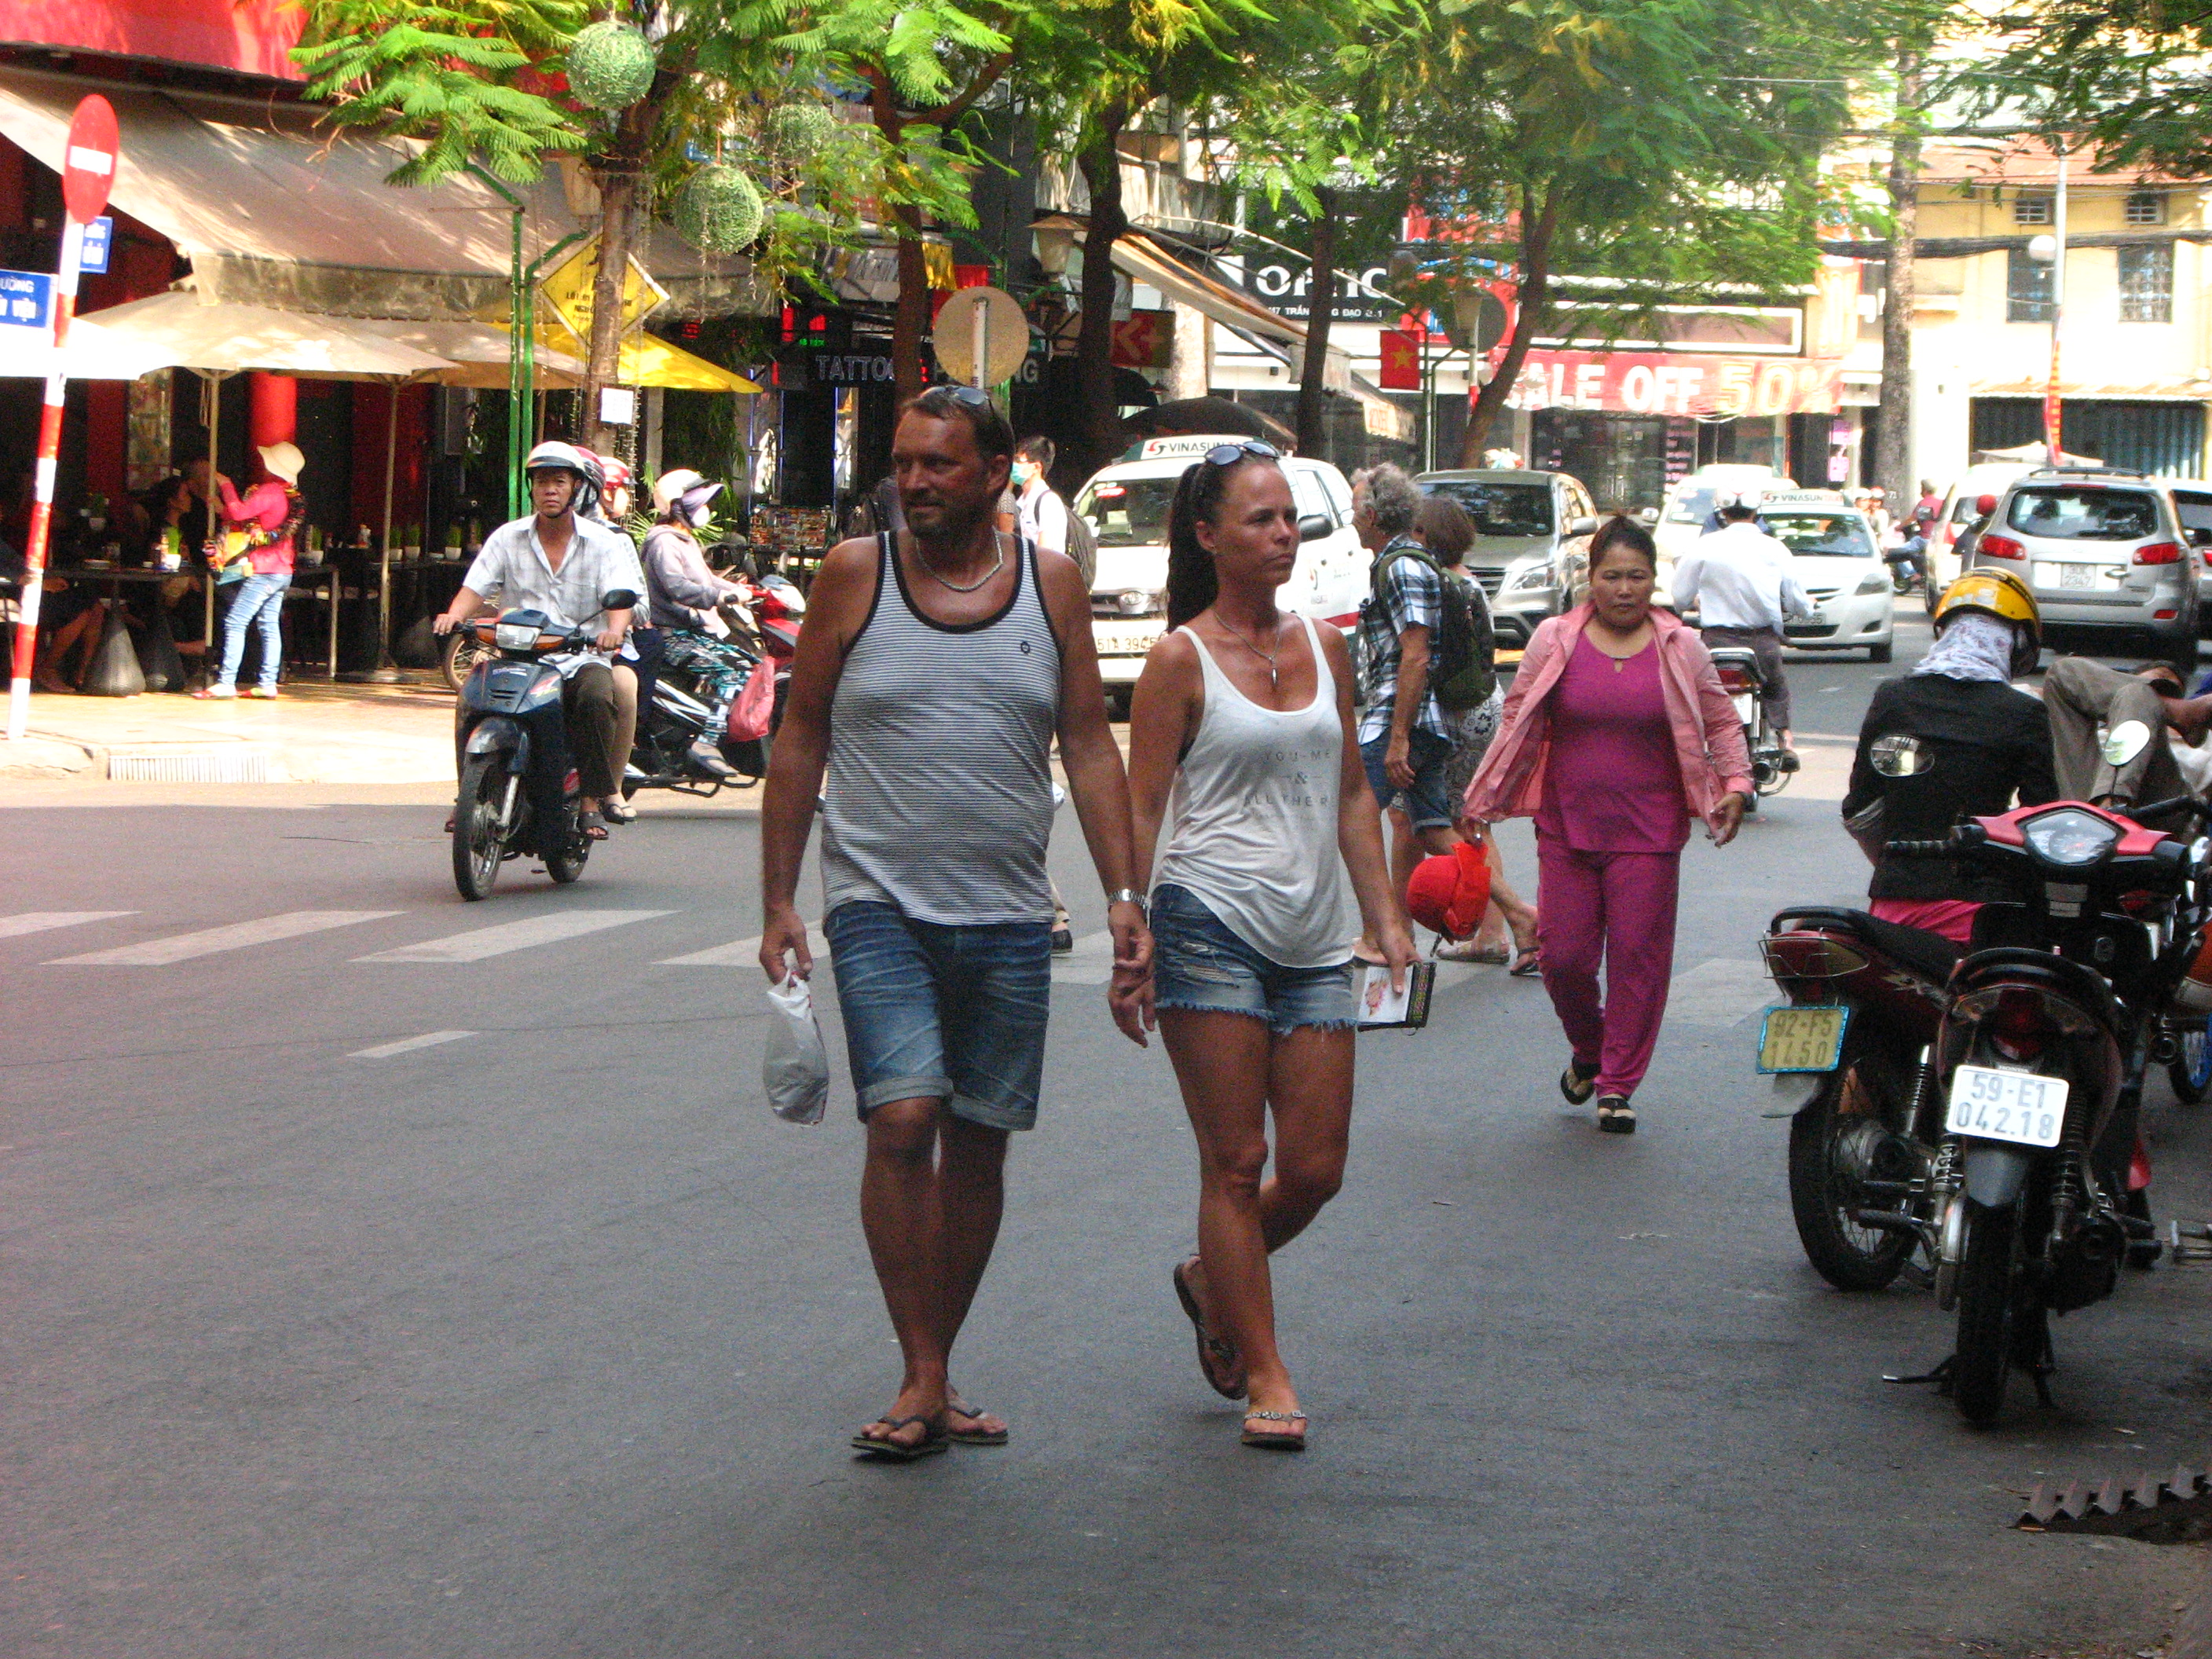 Vietnam waives visas for 5 more European countries, including Germany, UK